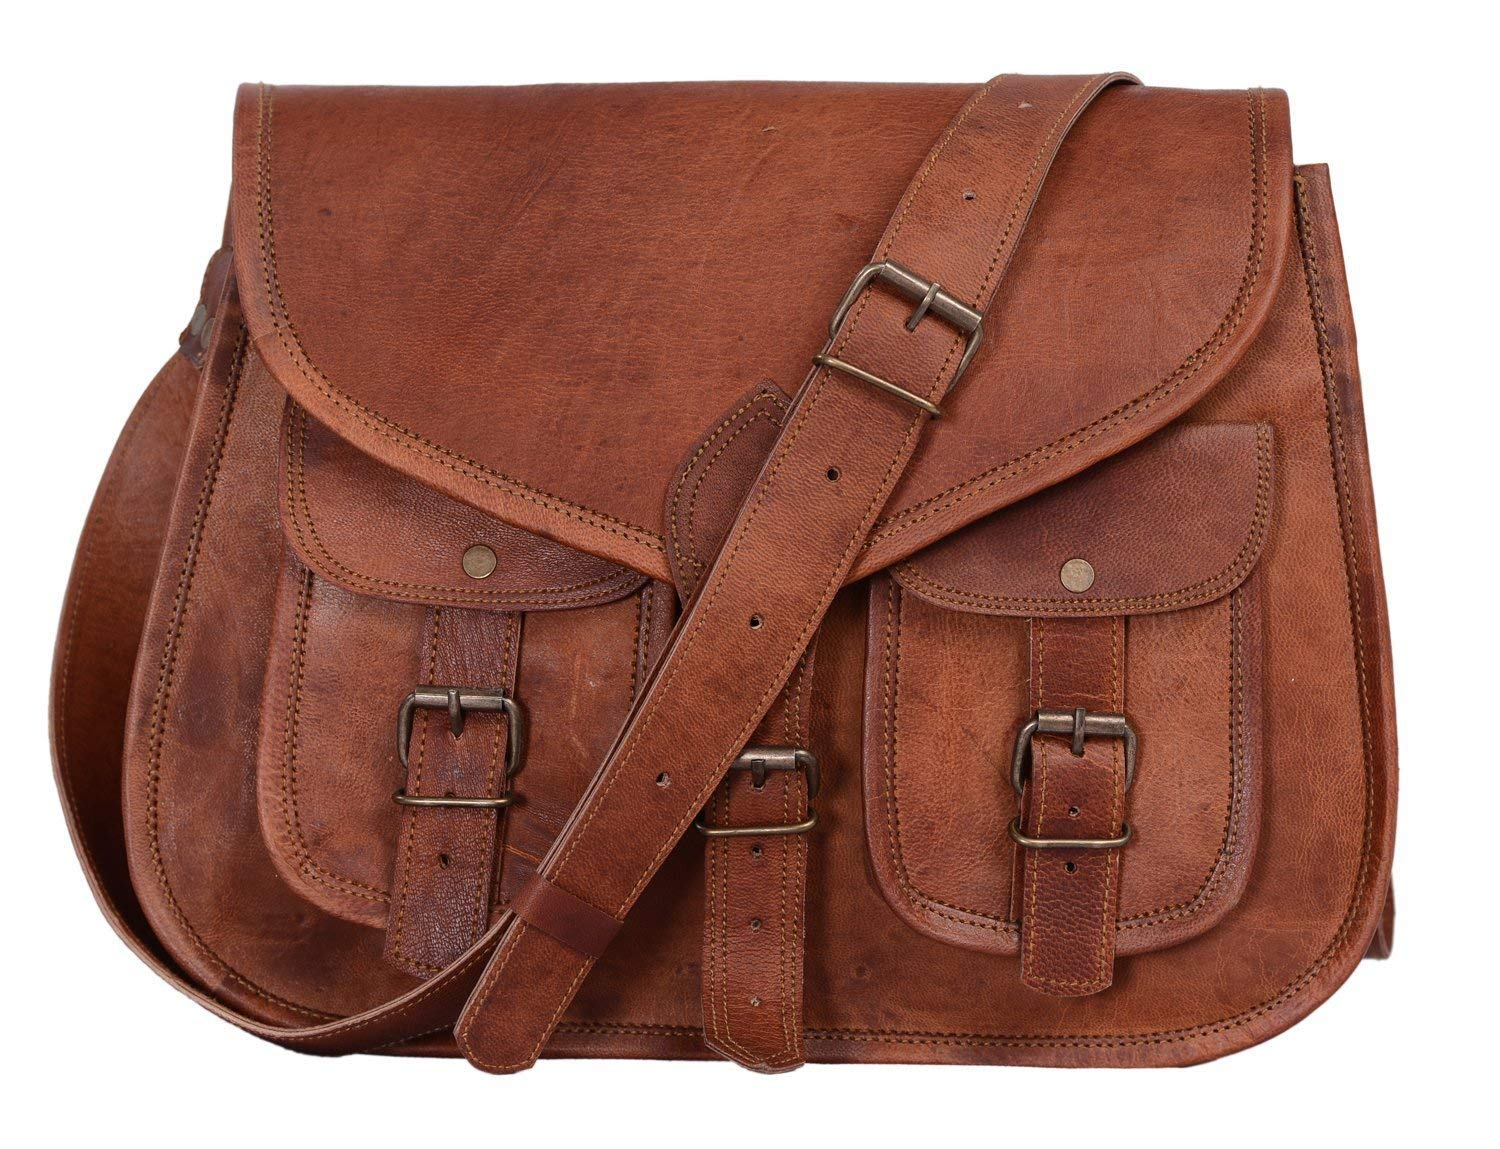 KPL 14 Inch Leather Purse Women Shoulder Bag Crossbody Satchel Ladies Tote Travel Purse Genuine Leather (Tan Brown) by Komal's Passion Leather